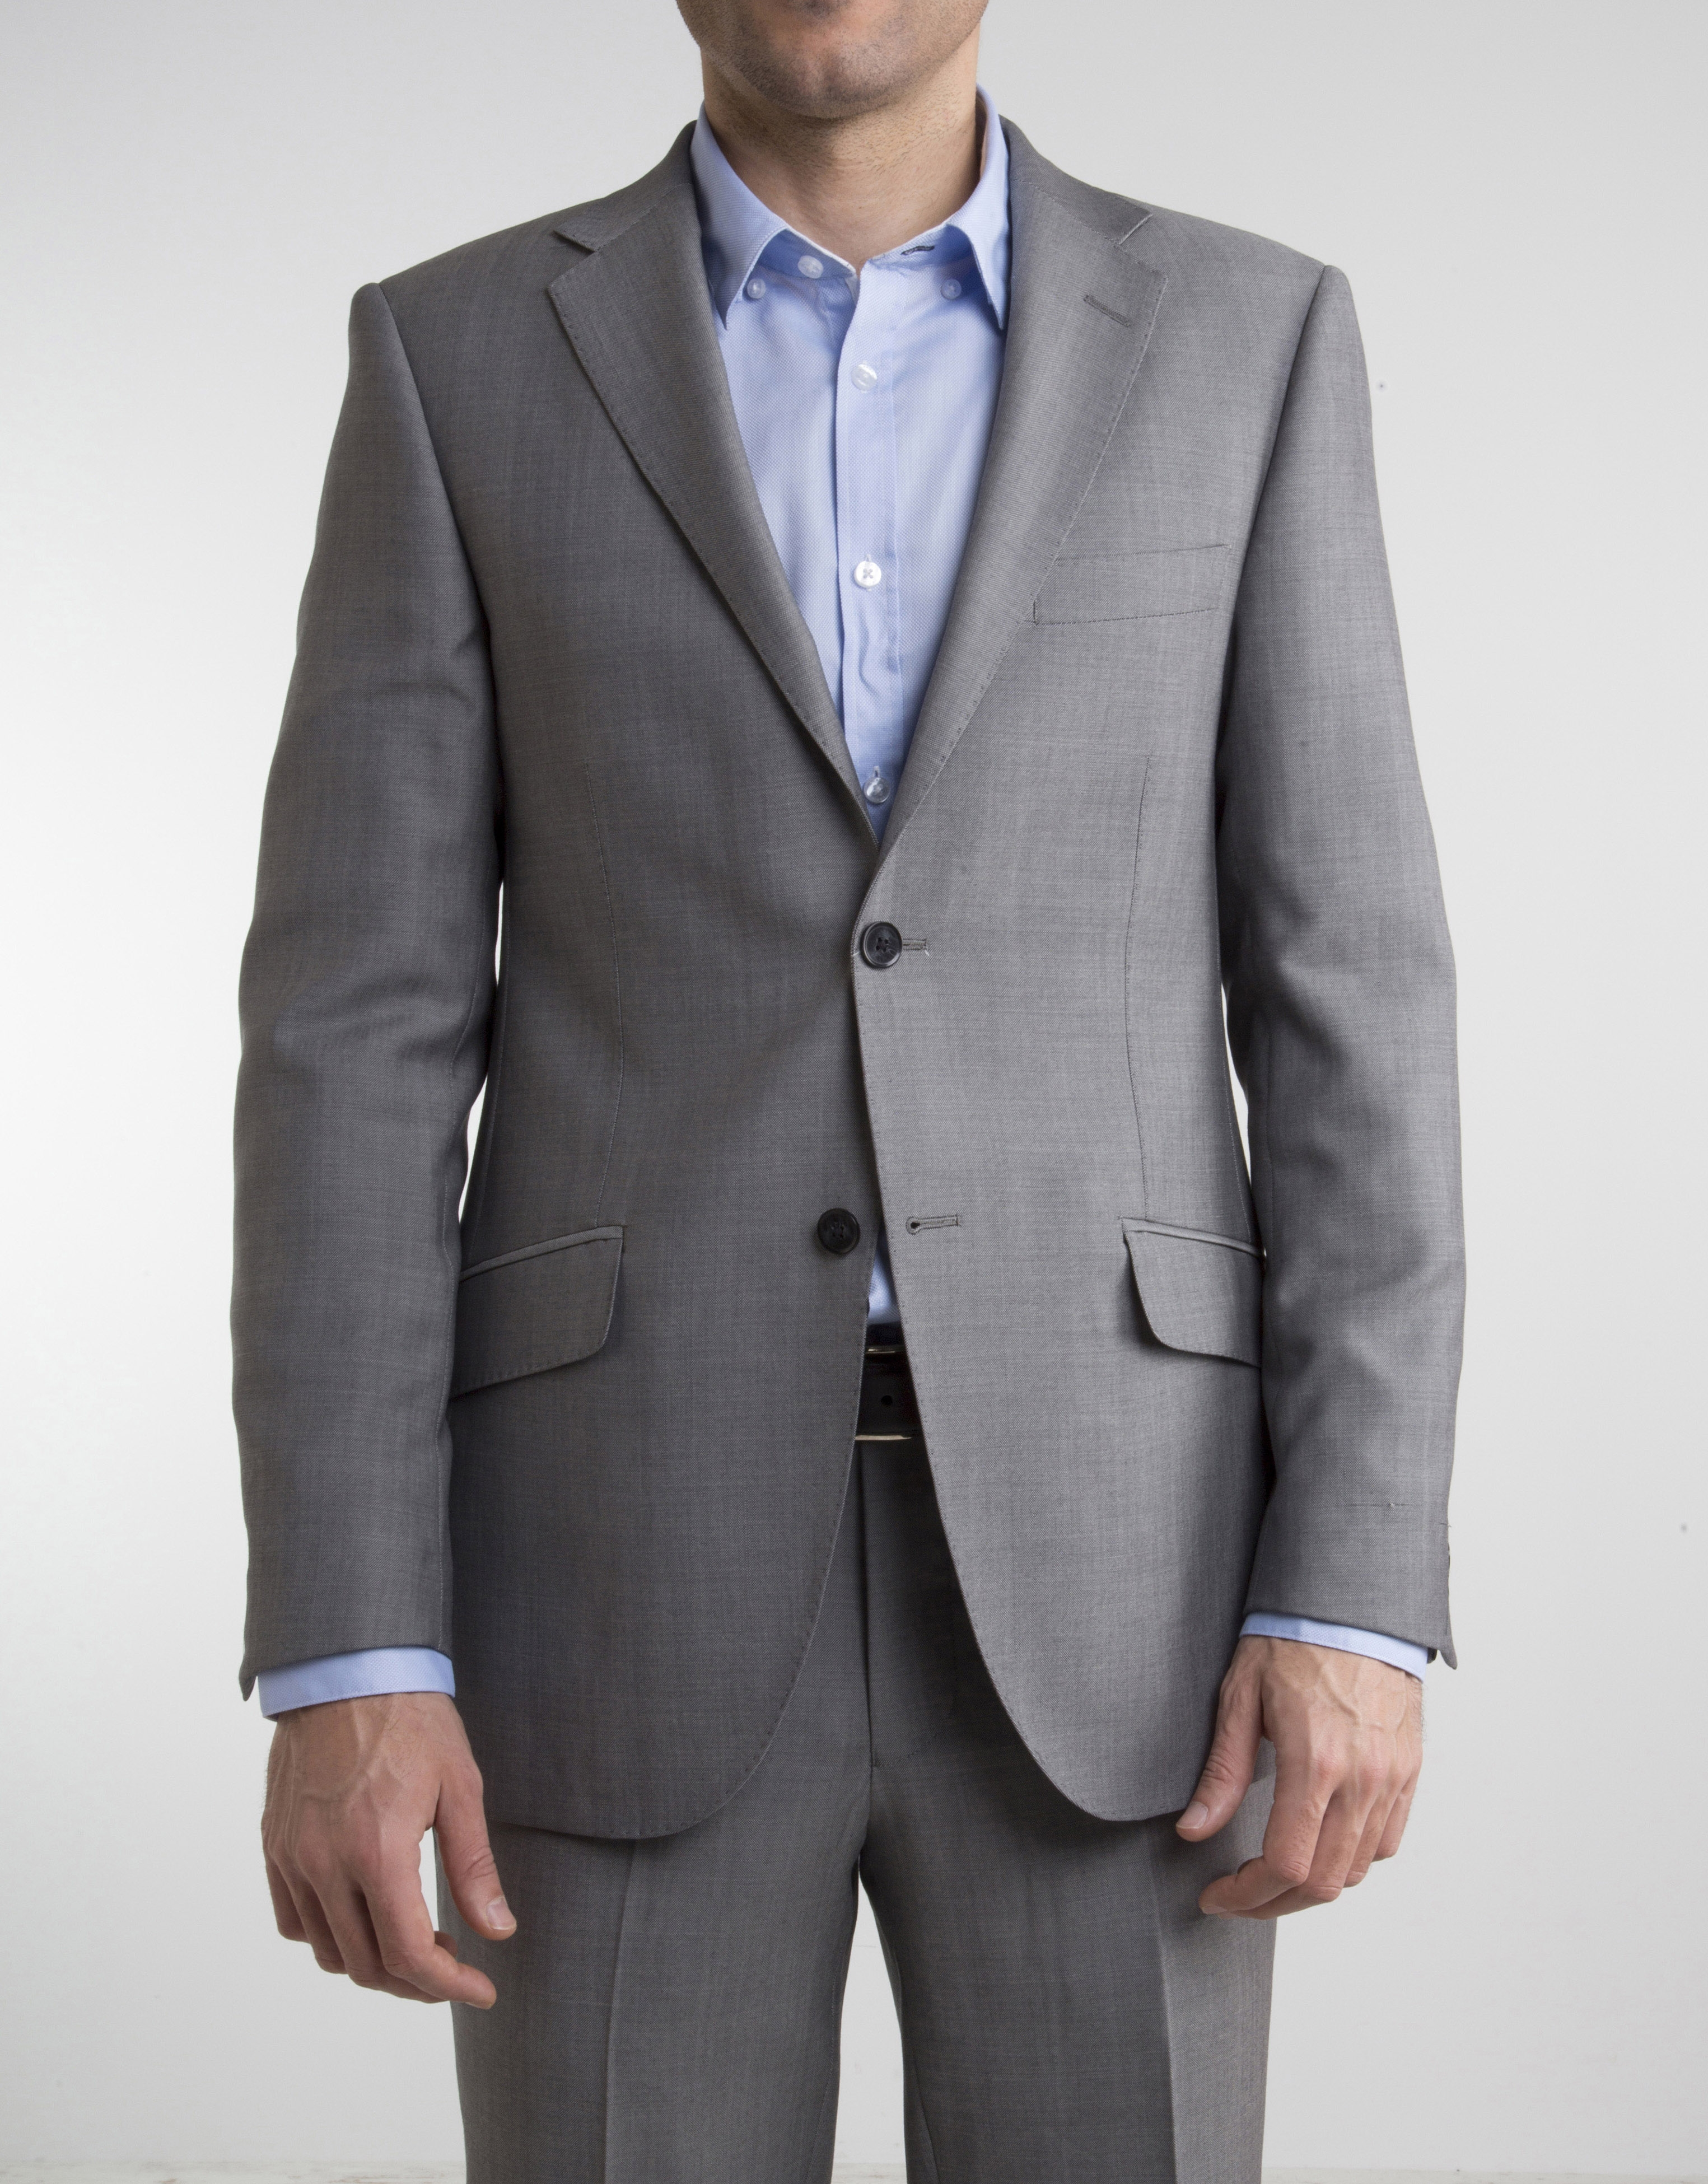 Shop for slim fit and fittted mens suits for skinny men. Get the latest styles, brands of fitted men's clothing from Men's Wearhouse. Buy one item at its regular retail price and get a second Suit of equal or lesser value for $ or Sport Coat of equal or lesser value .